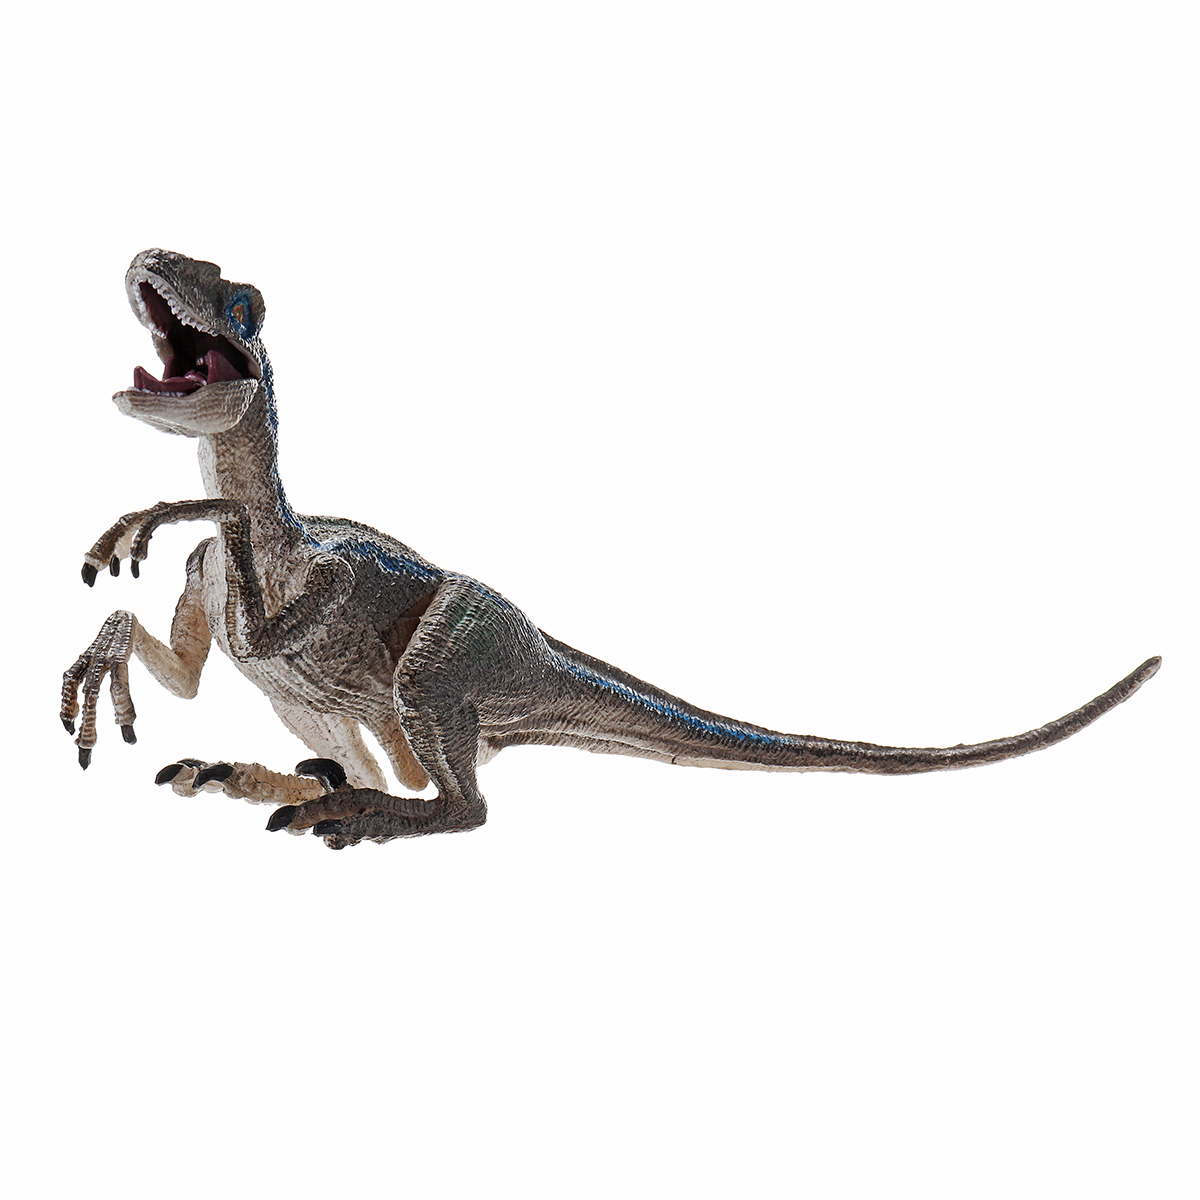 20cm Dinosaur Diecast Model Toy Plastic World Park Dinosaur Model Action Figures Kids Boy Gift